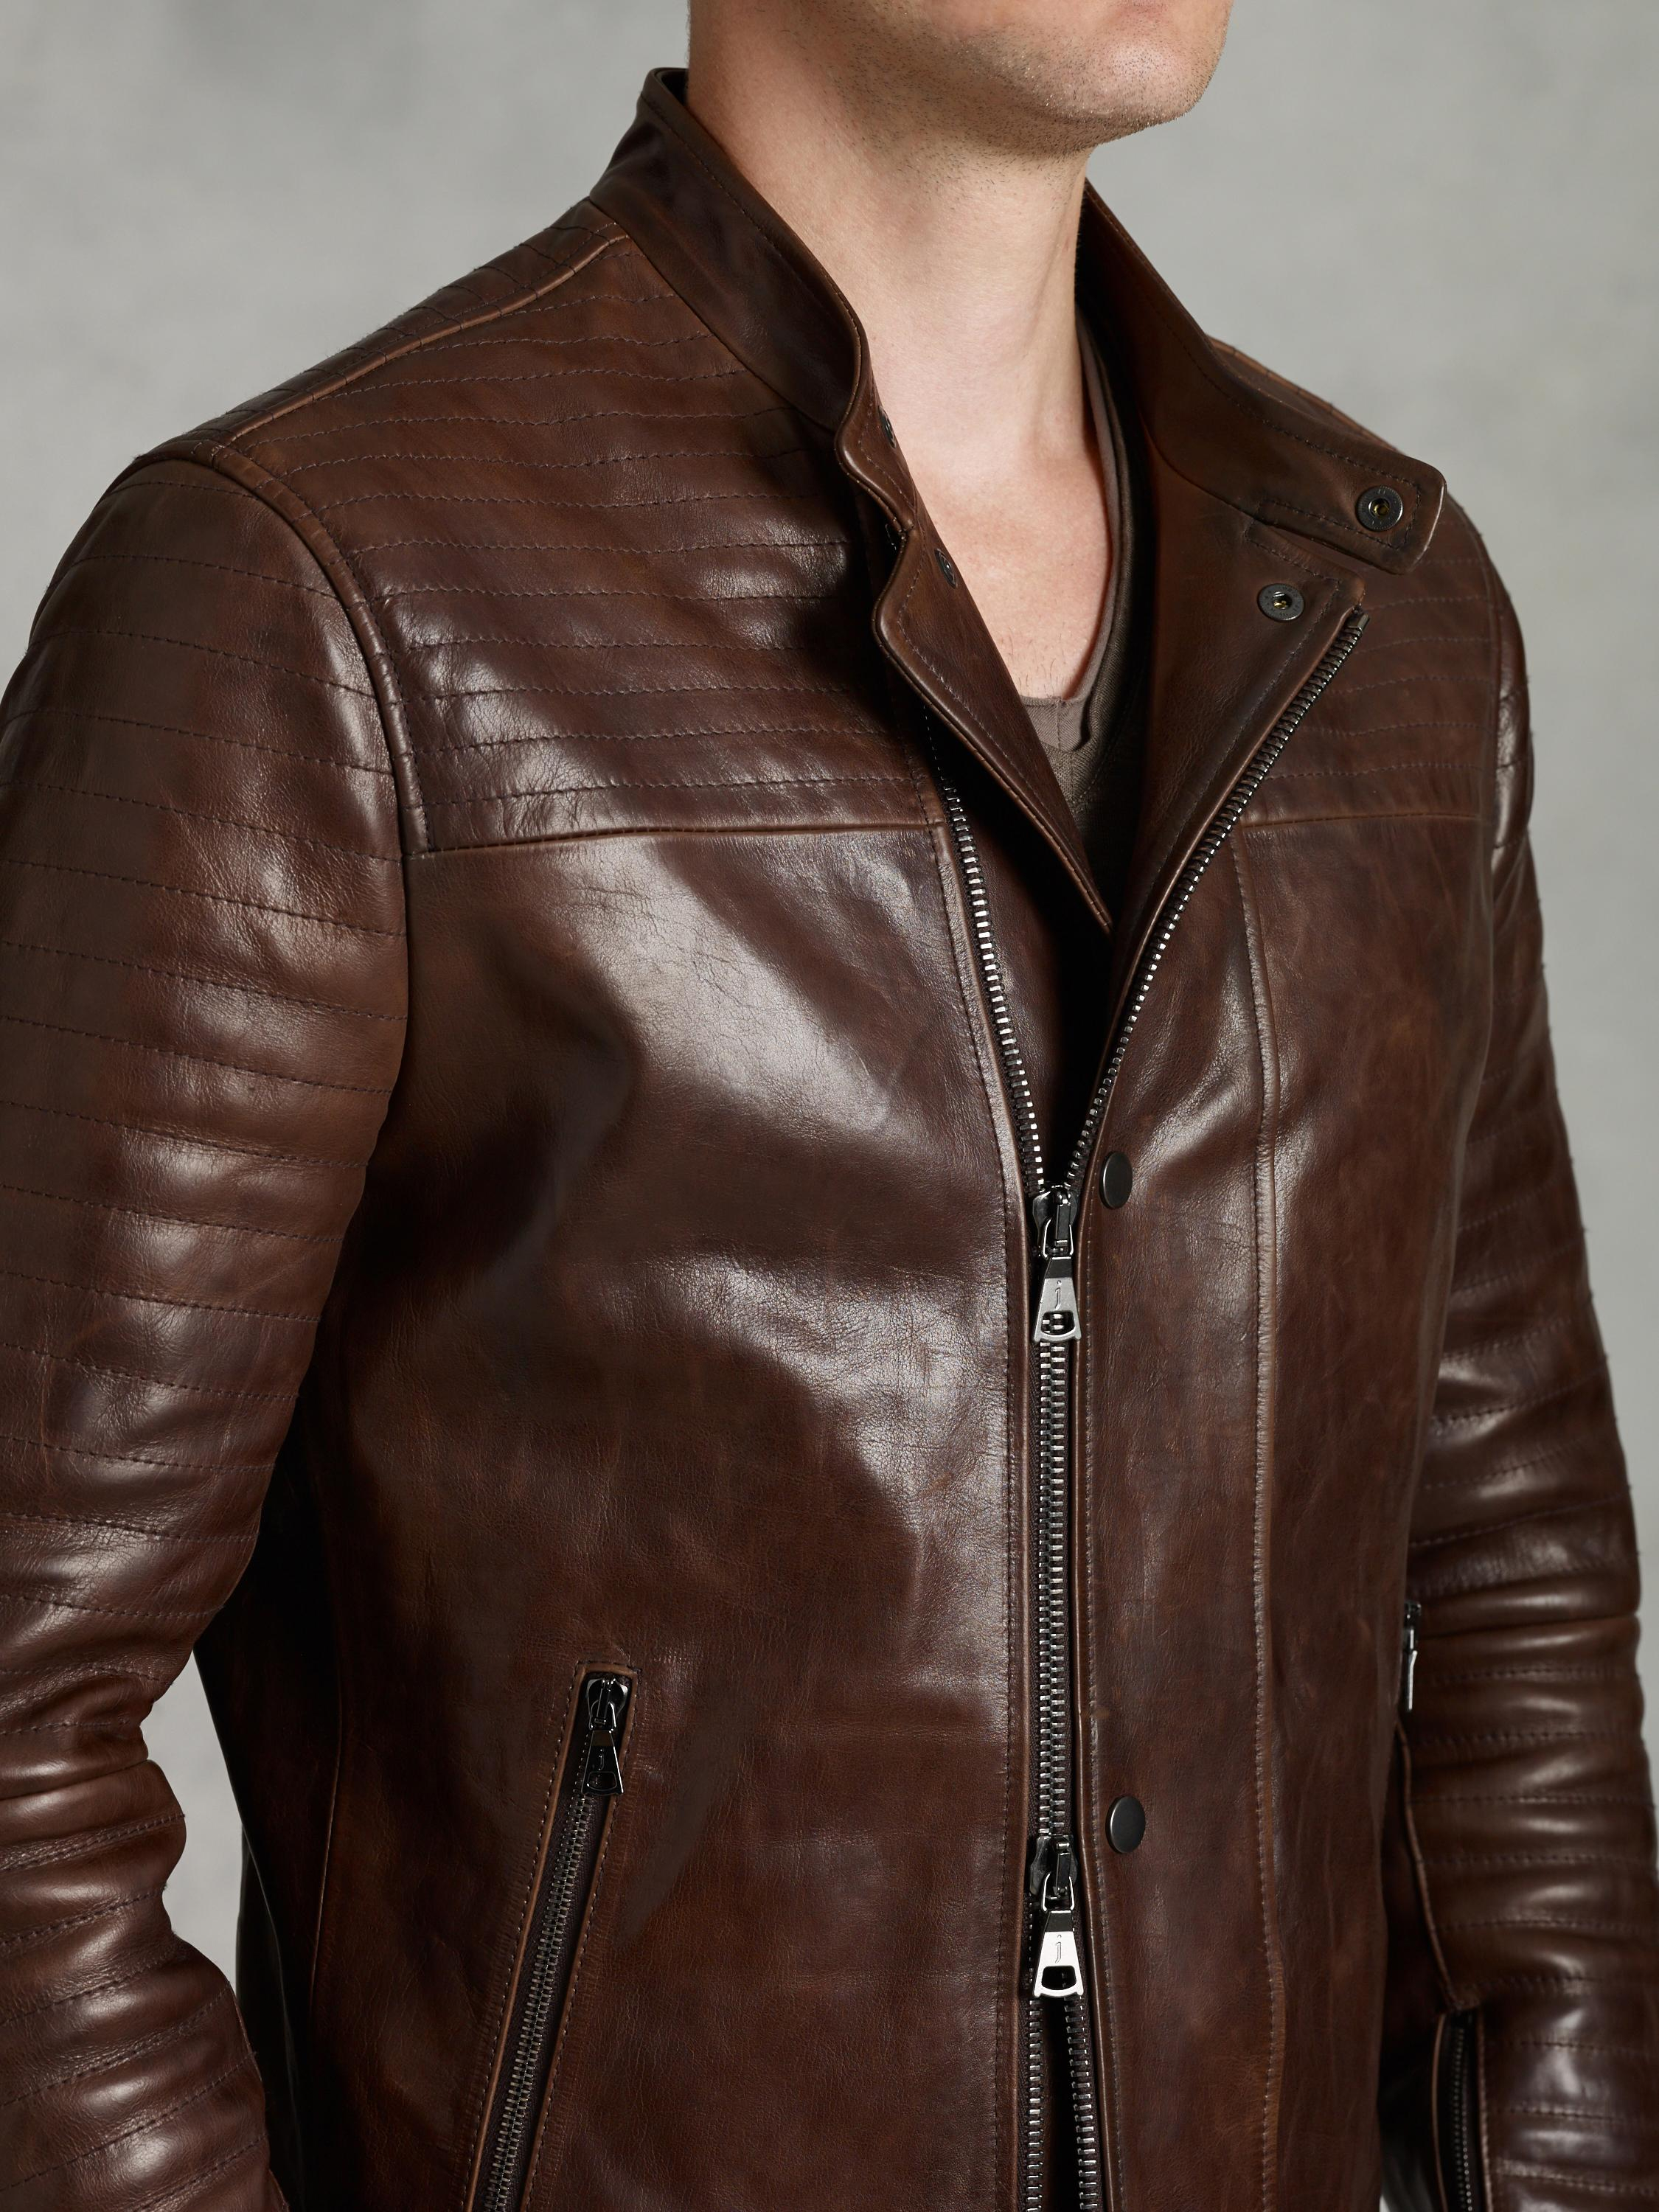 John Varvatos Leather Biker Jacket In Brown For Men Lyst